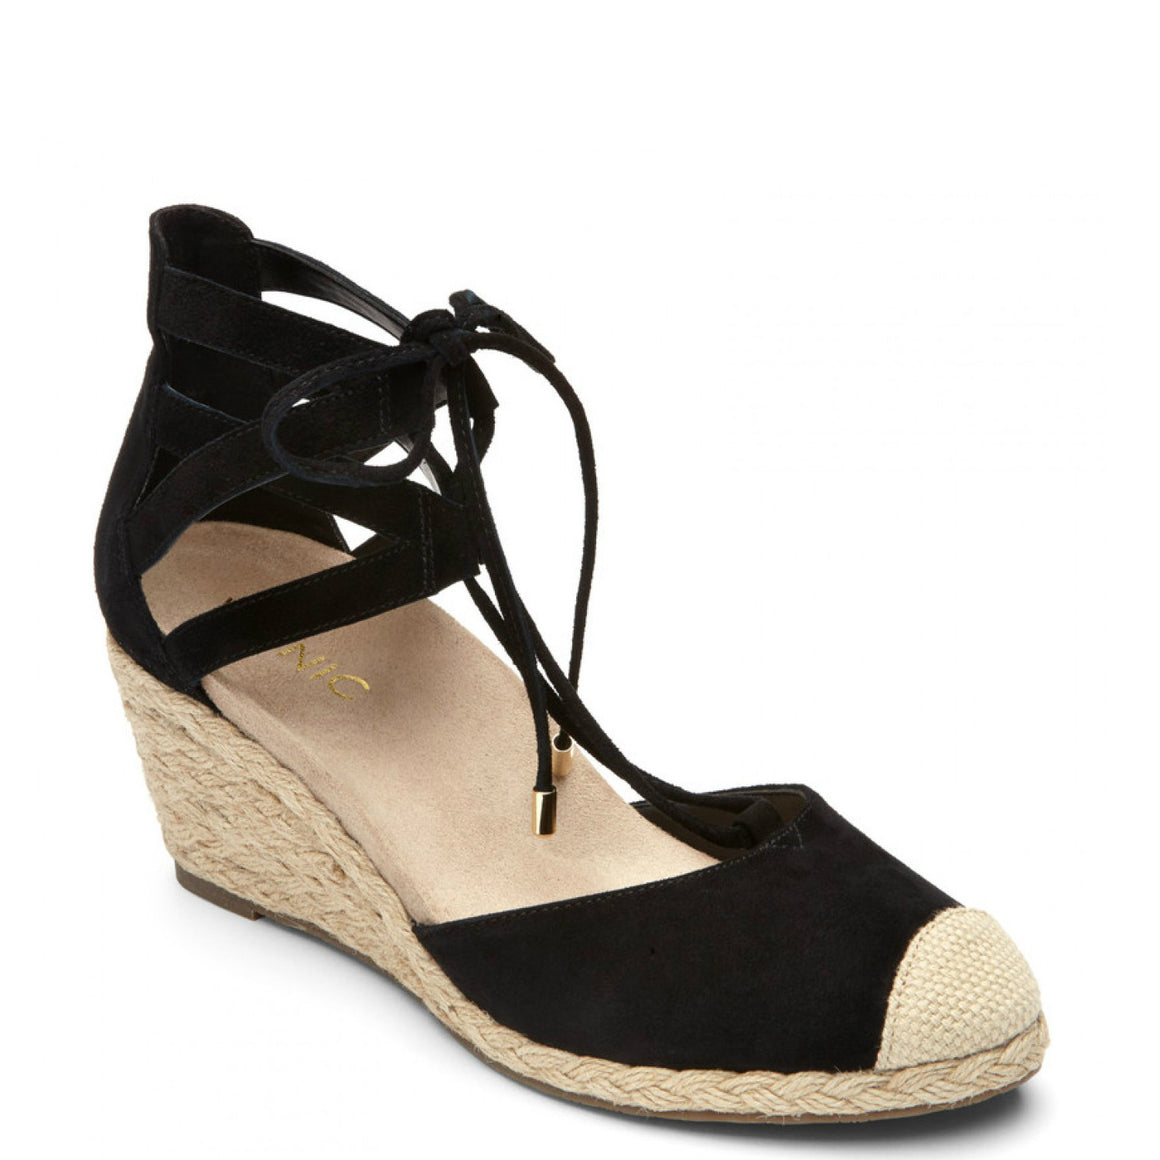 Vionic Women's Calypso Espadrille Wedge - Black